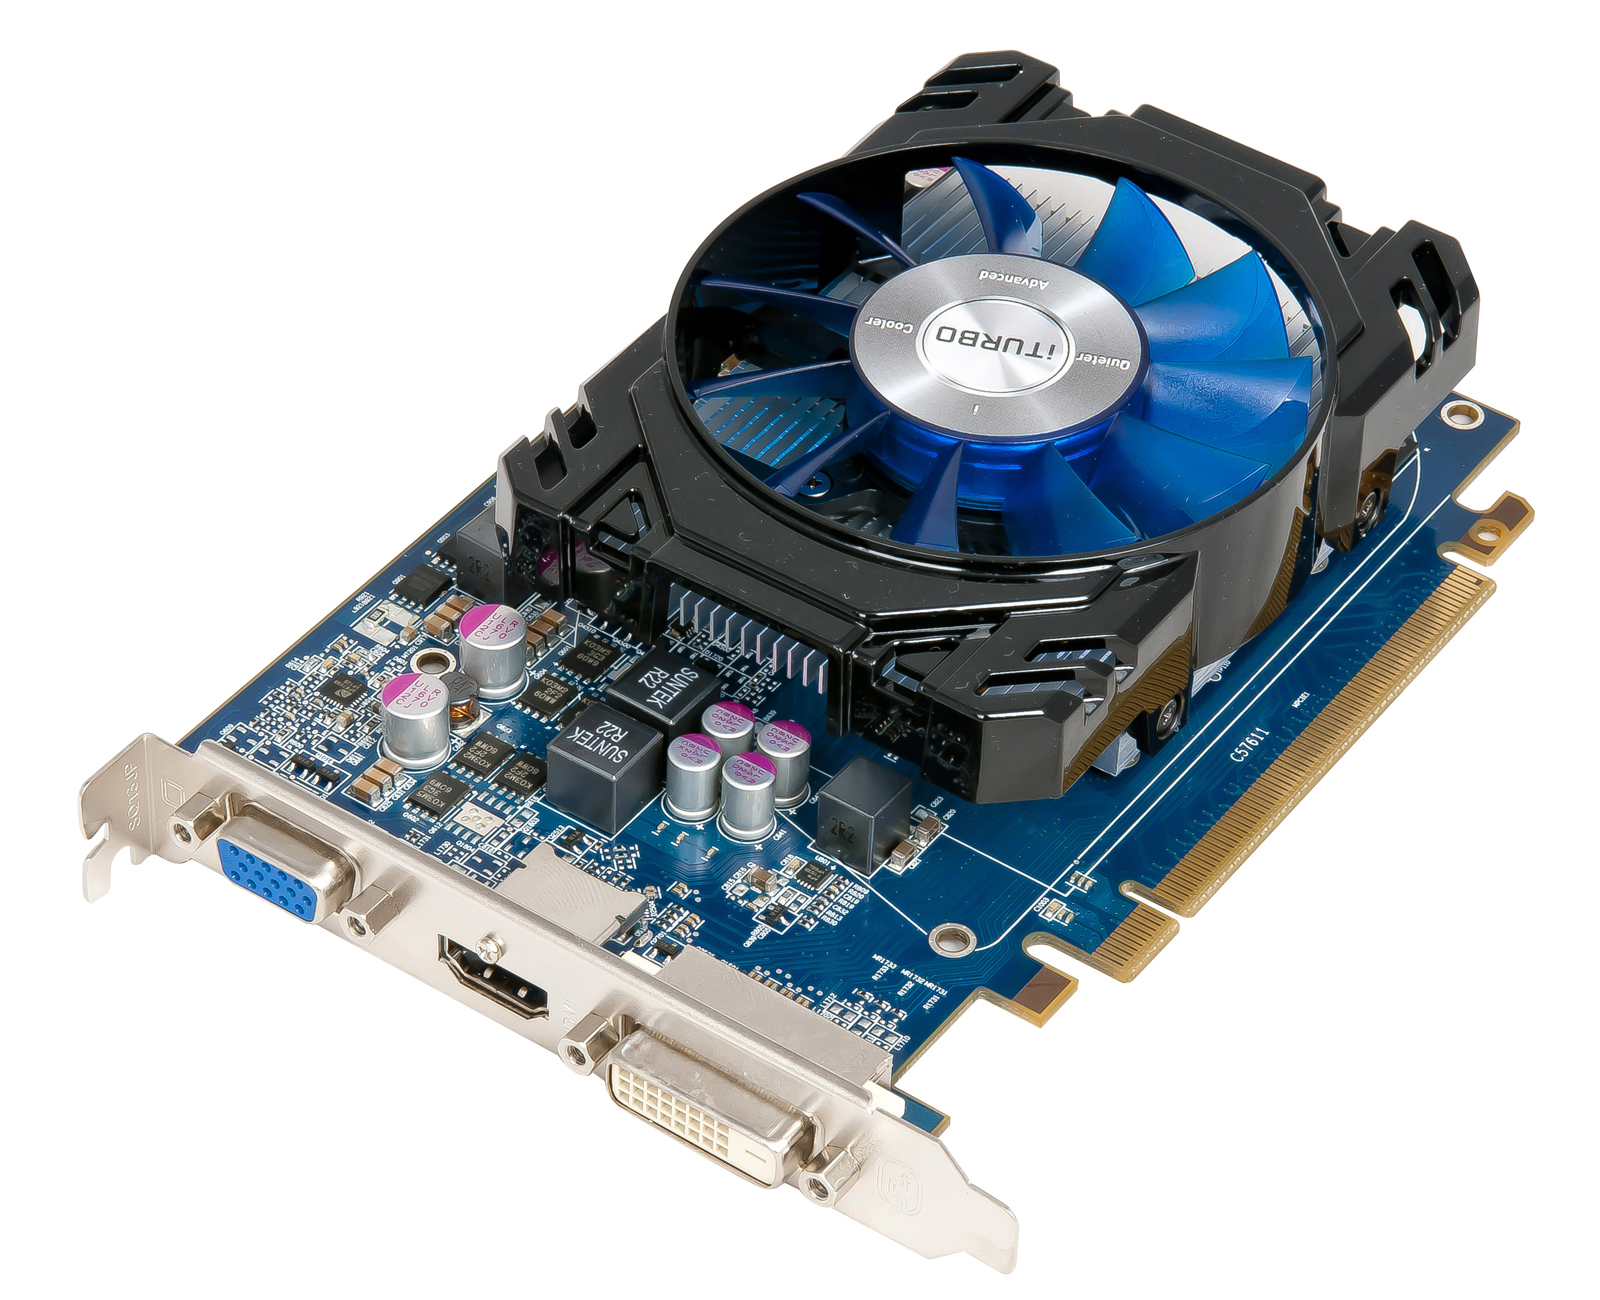 His Radeon R7 250 Icooler And Radeon R7 240 Icooler Graphic Cards Review